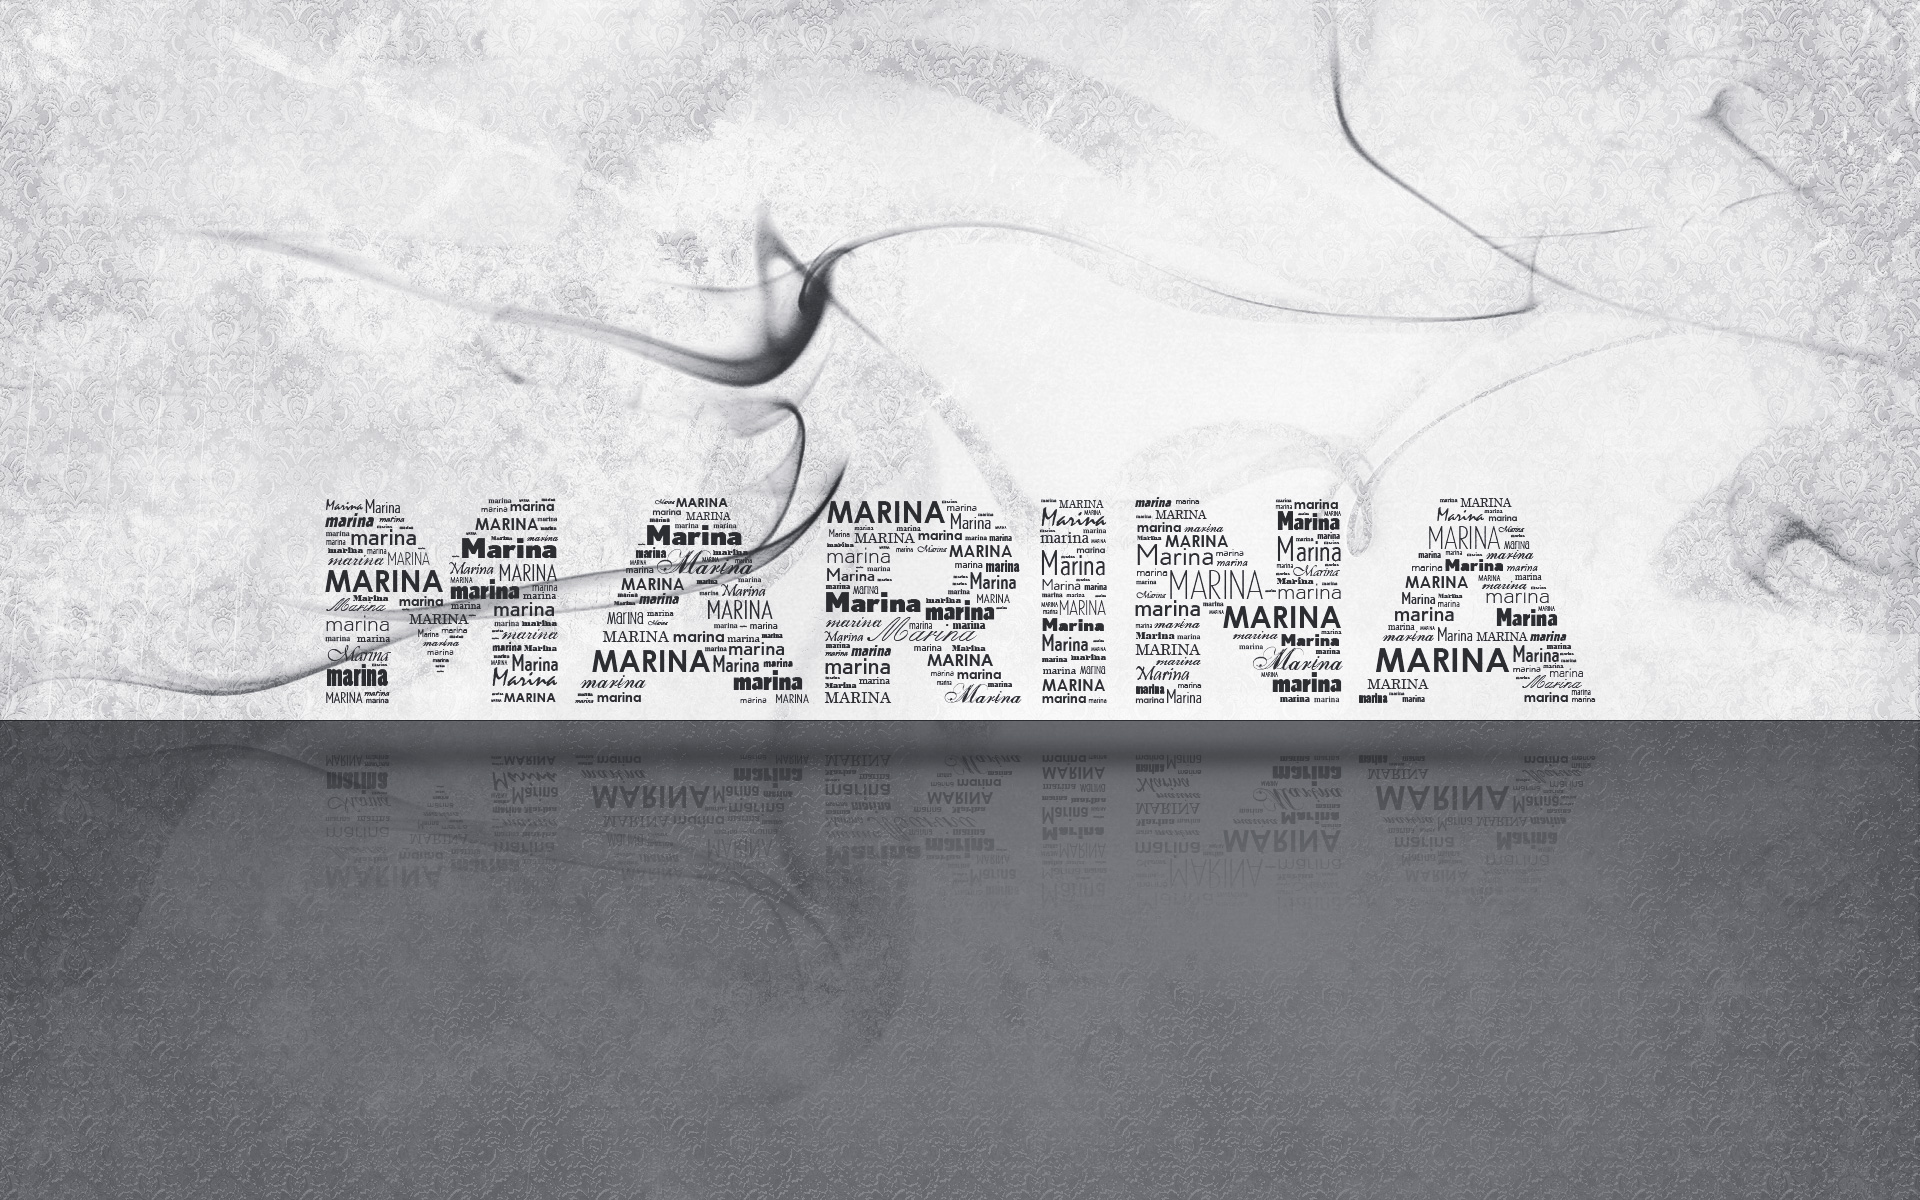 marina s wallpapers graphic design wallpaper i made for my and my ...